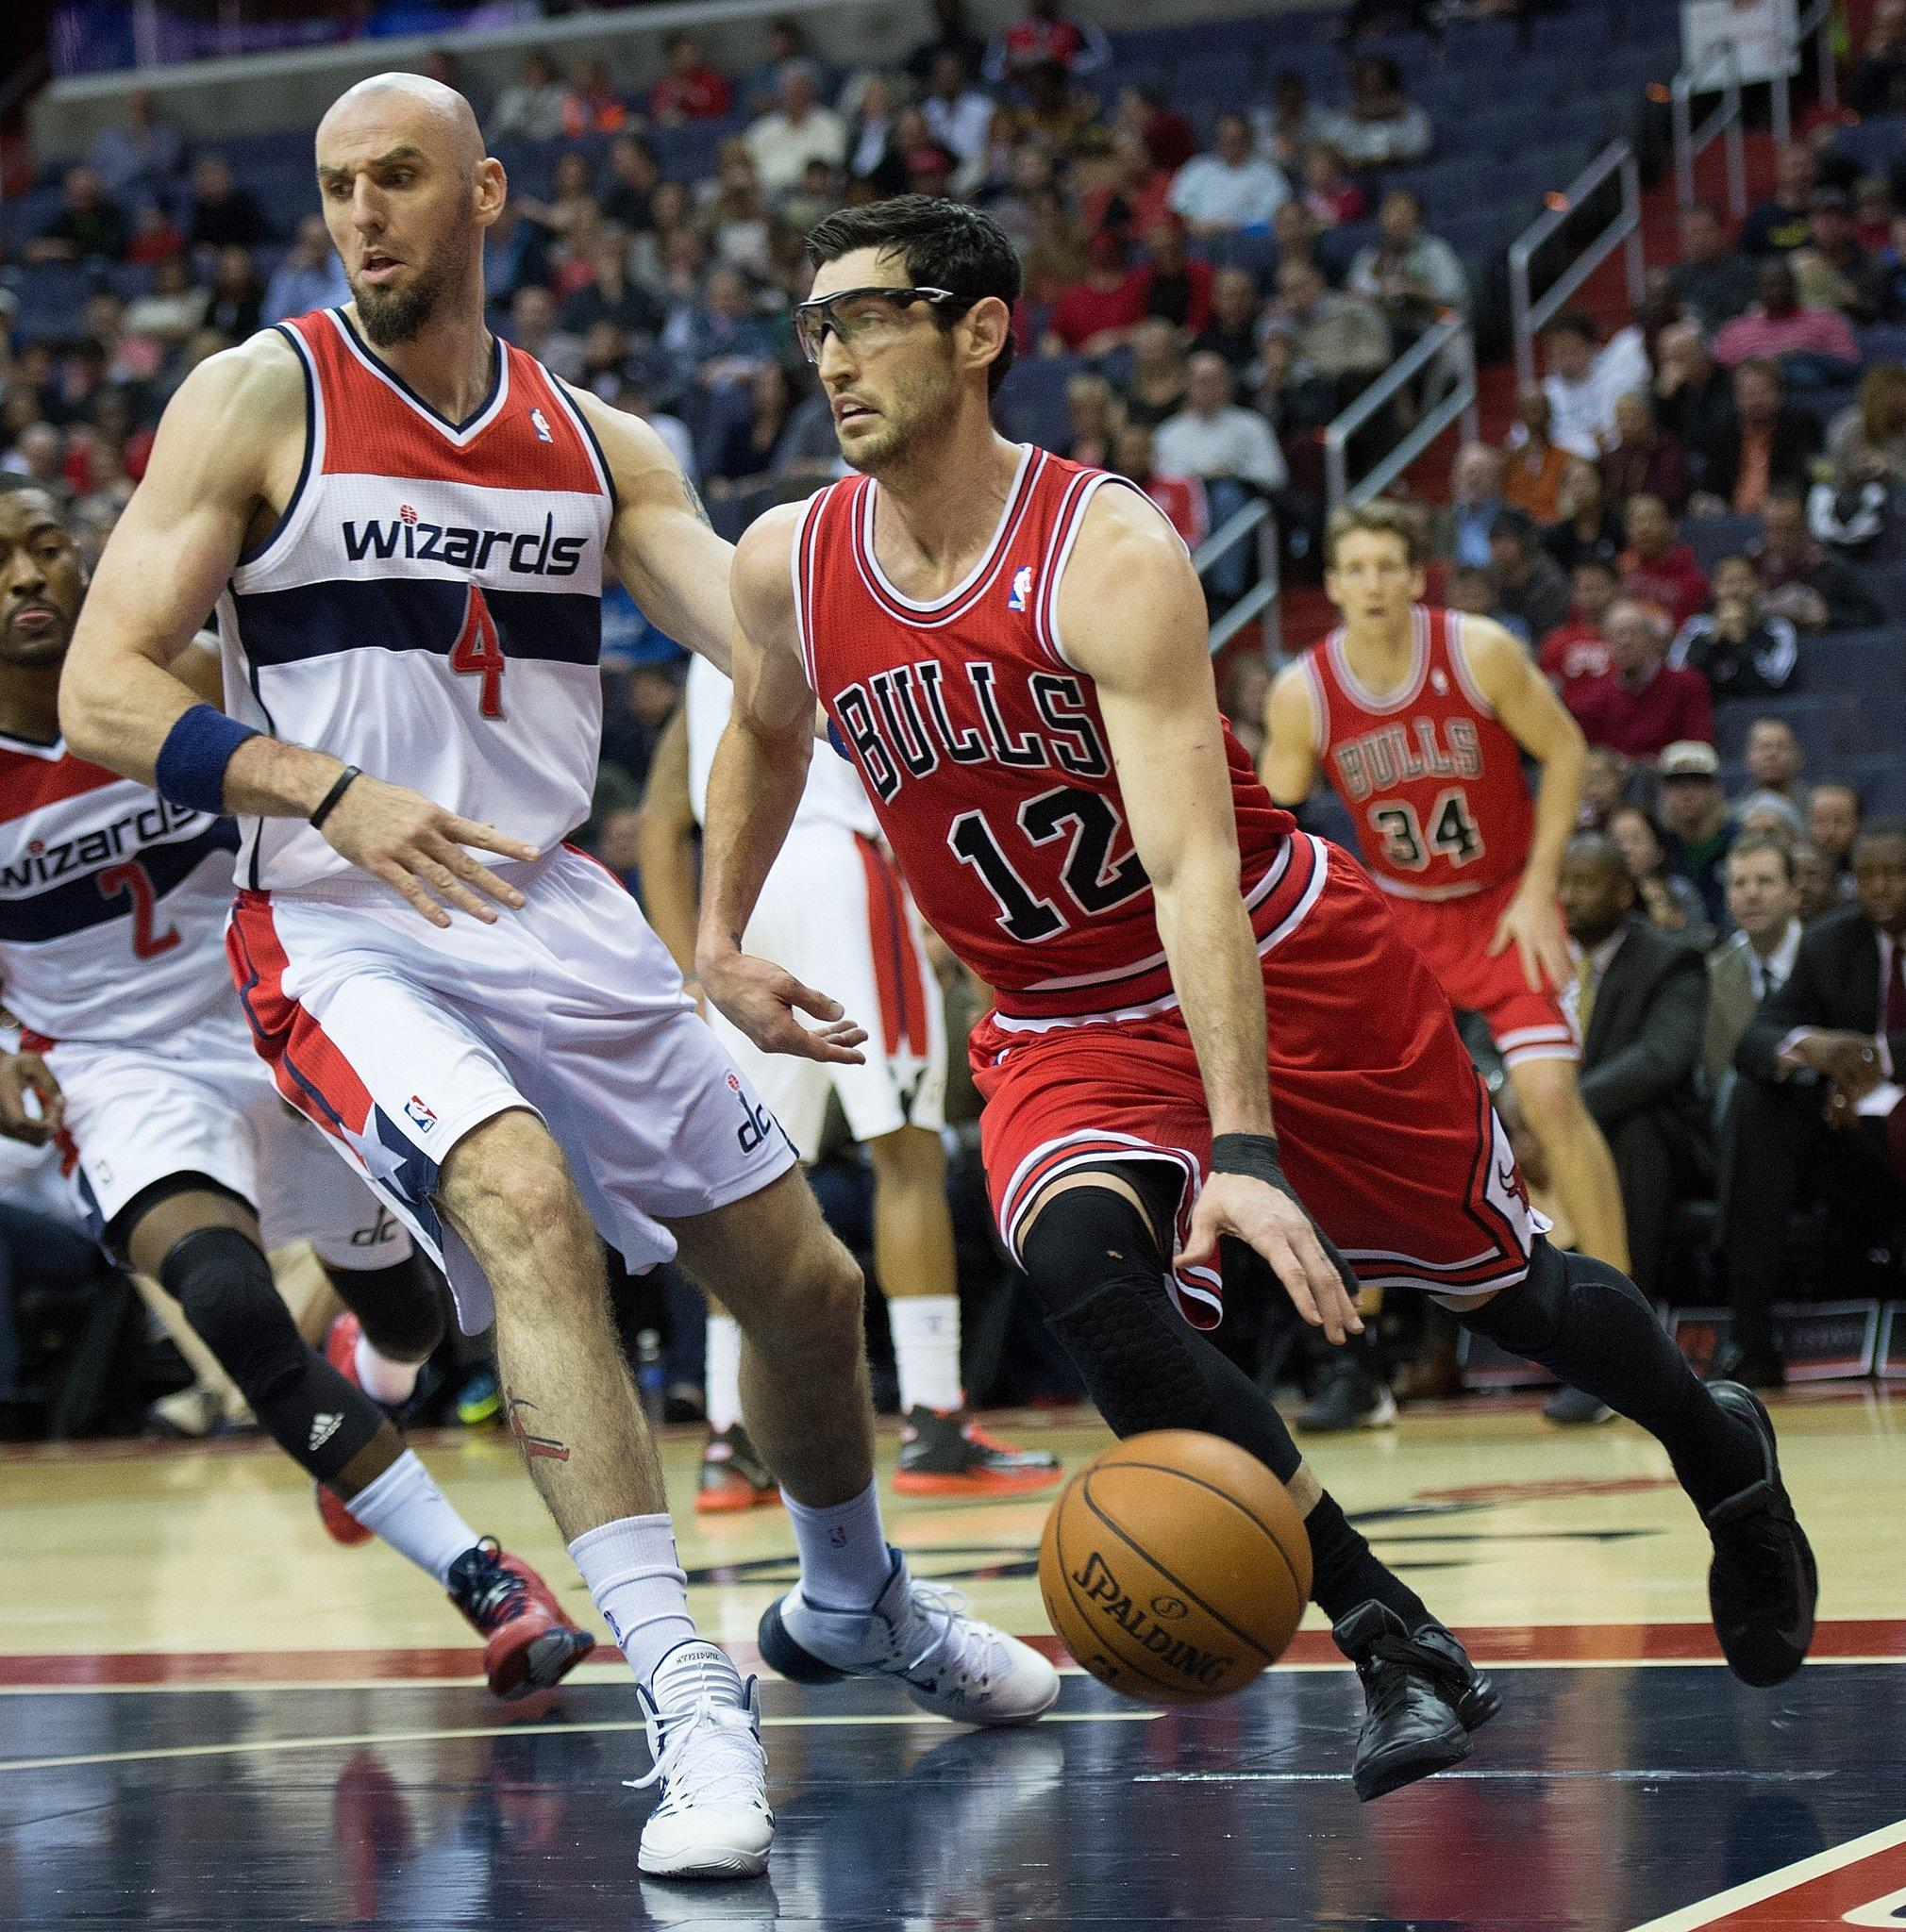 Chicago Bulls shooting guard Kirk Hinrich (12) drives under the basket pass Washington Wizards center Marcin Gortat (4) during the first half of their game played at the Verizon Center in Washington, Friday, Jan. 17, 2014.